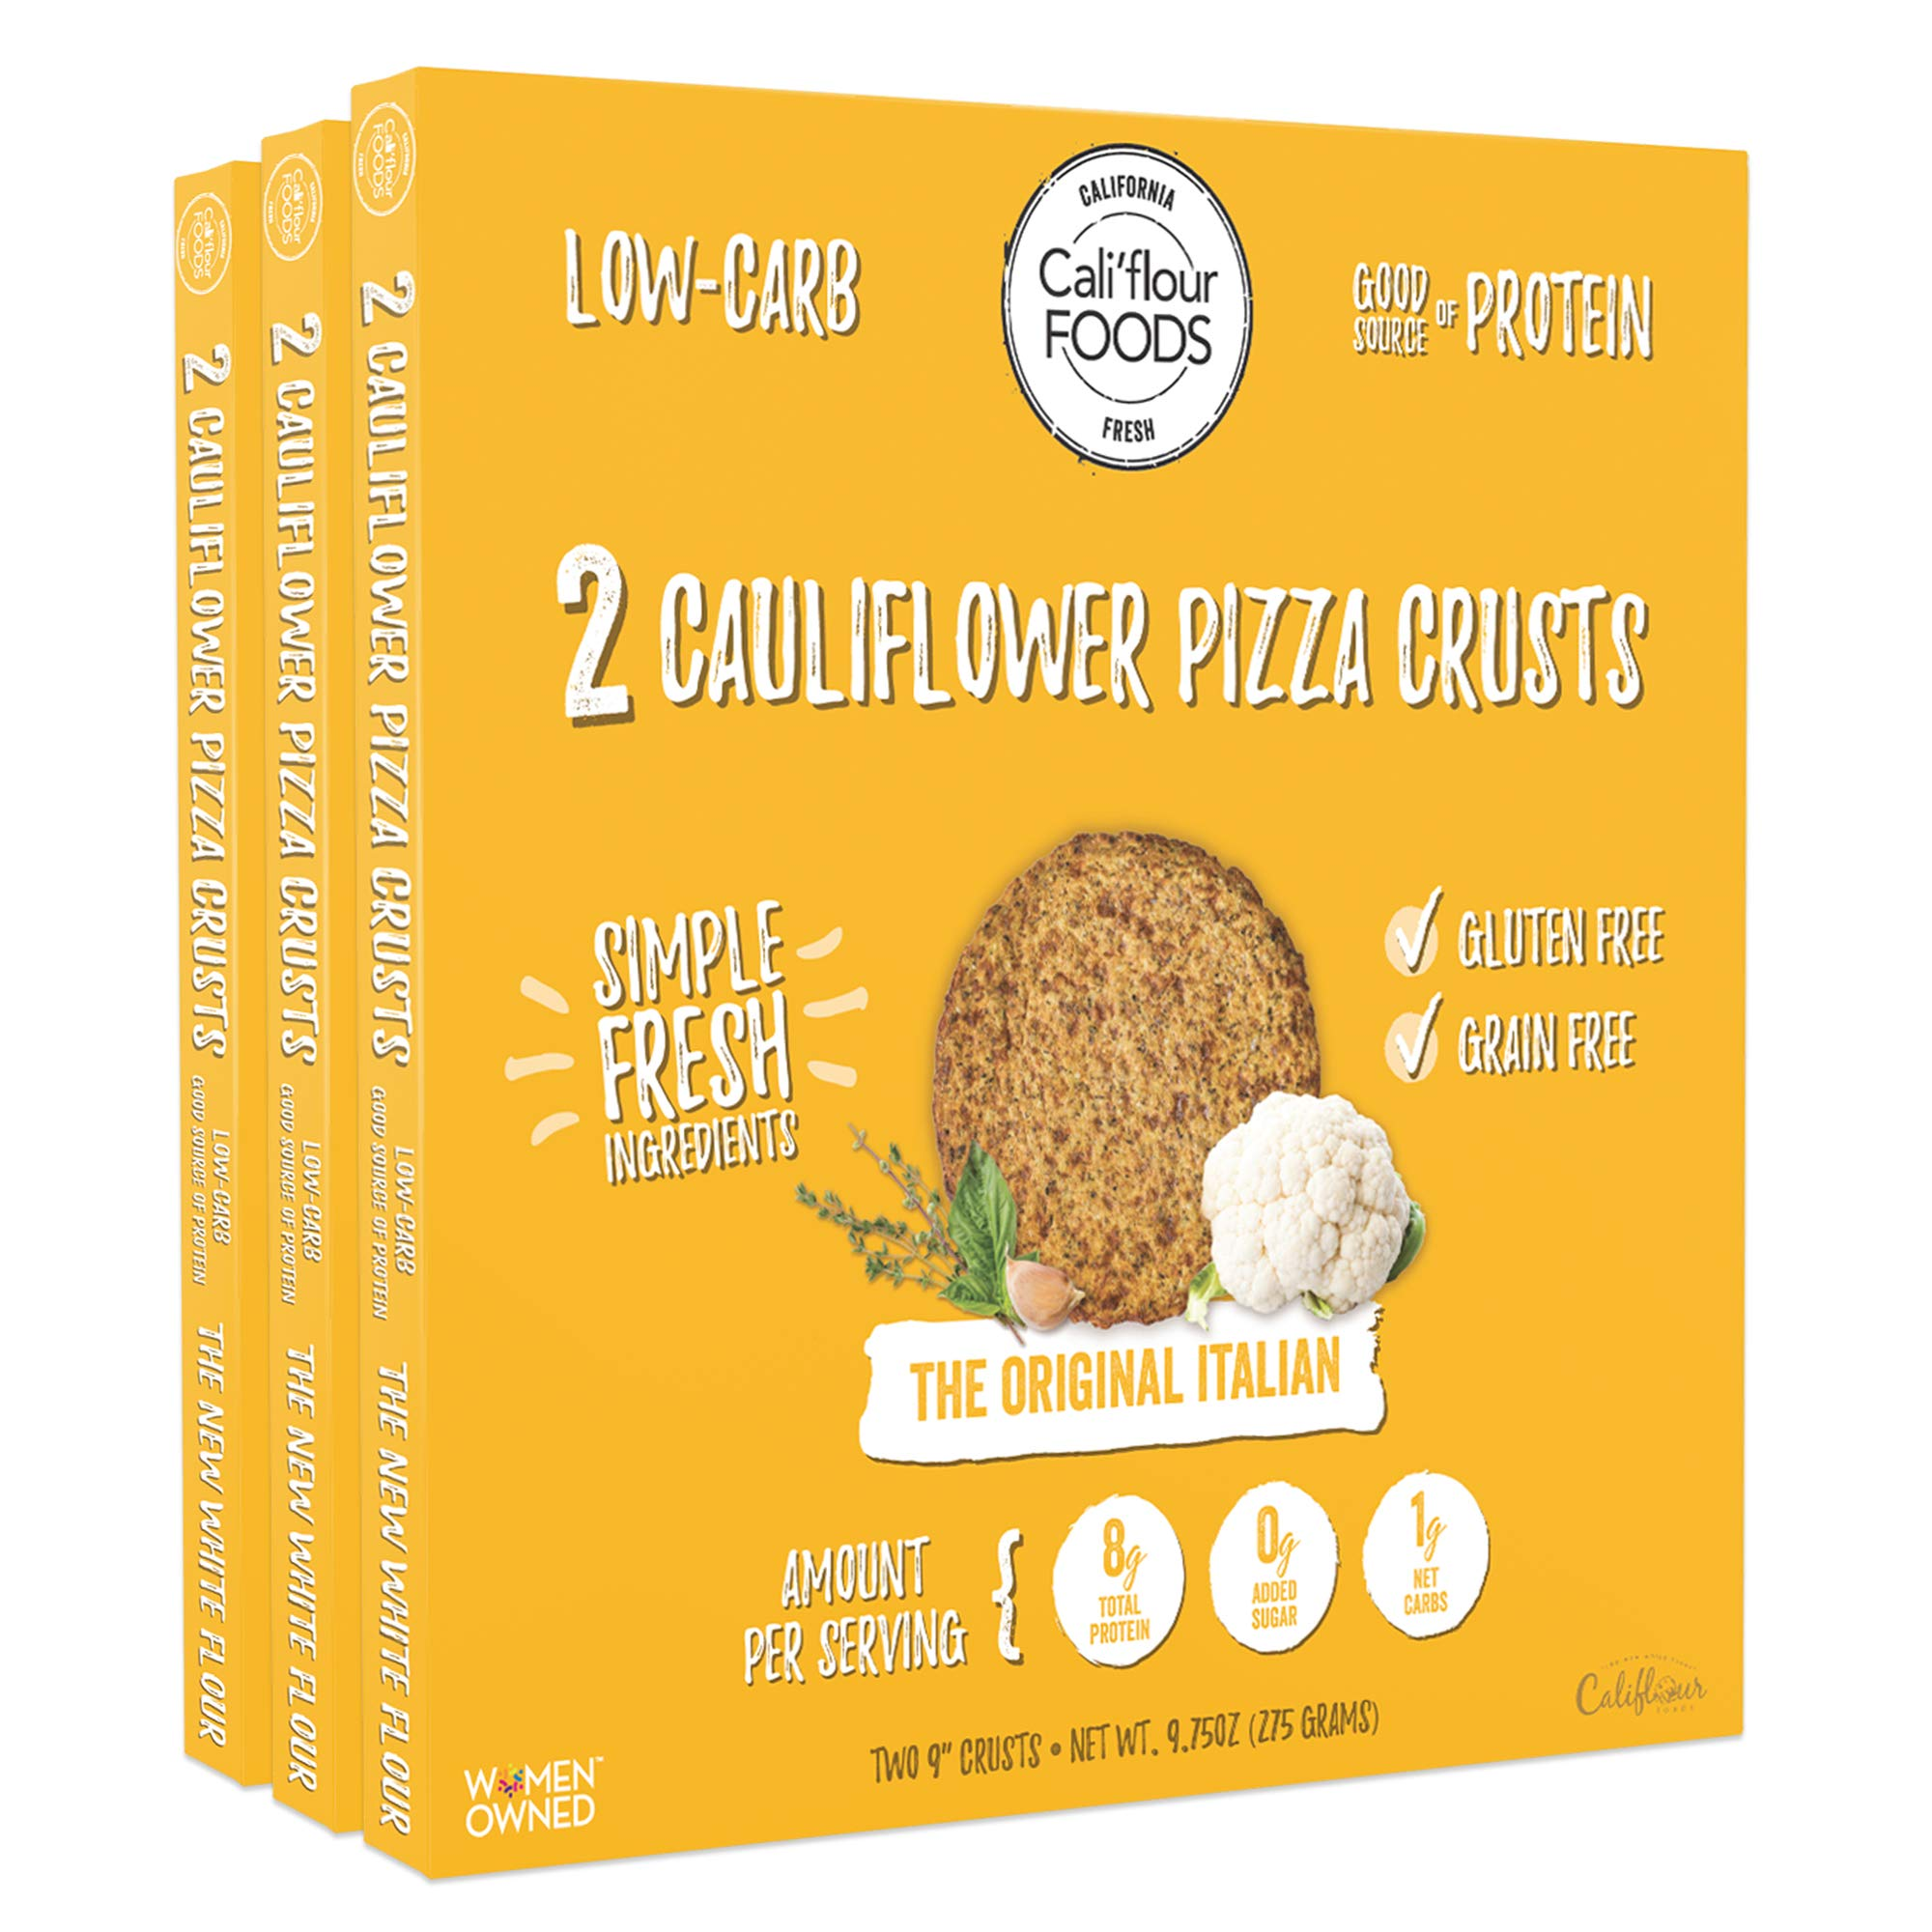 Cali'flour Foods Pizza Crust (Original Italian, 3 Boxes, 6 Crusts) - Fresh Cauliflower Base | Low Carb, High Protein, Gluten and Grain Free | Keto Friendly by THE NEW WHITE FLOUR CALIFLOUR FOODS